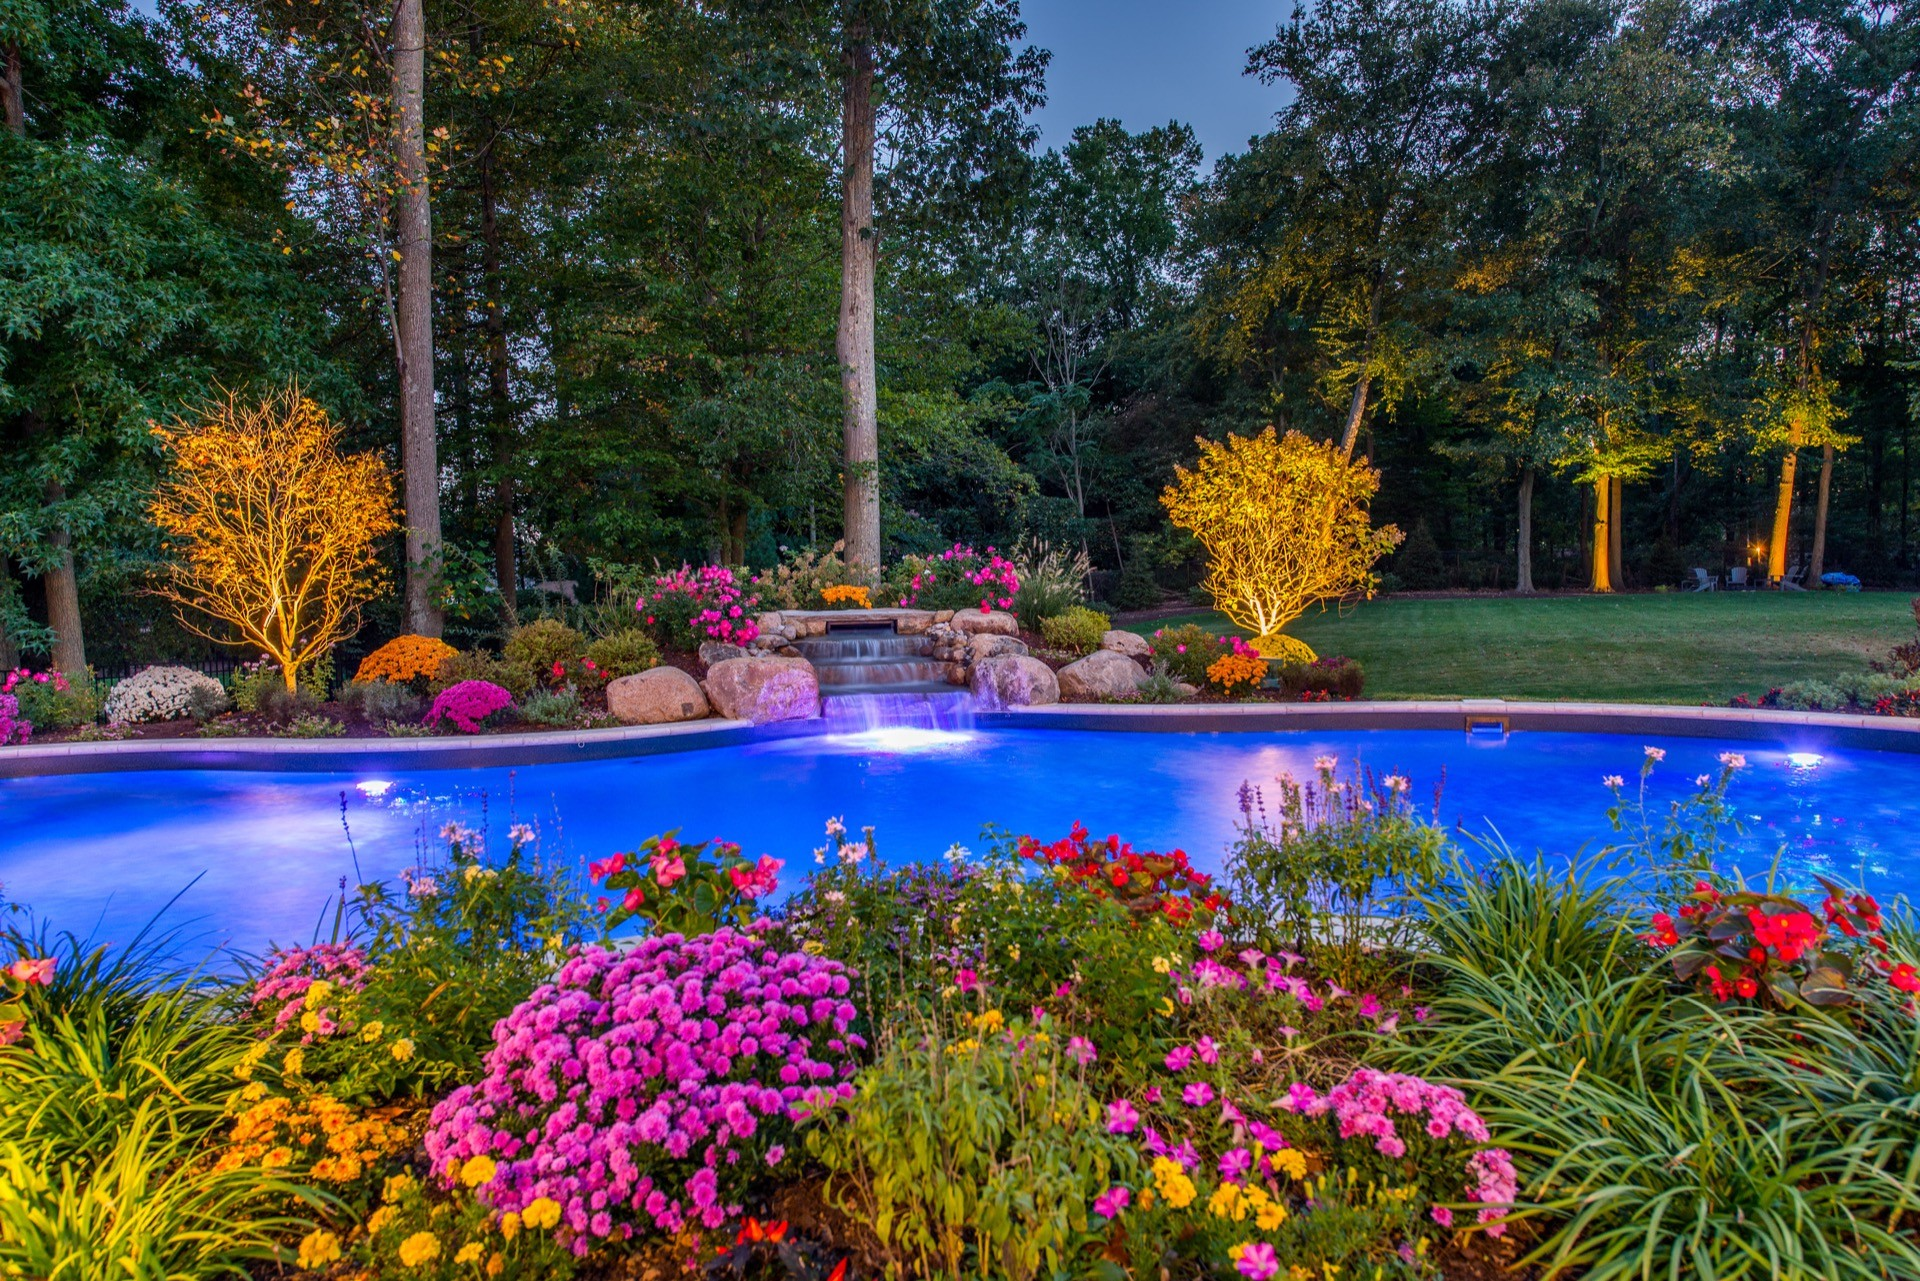 Scotch Plains, NJ built by The Pool Boss, #1 in New Jersey for Affordable, Luxury Pool Construction